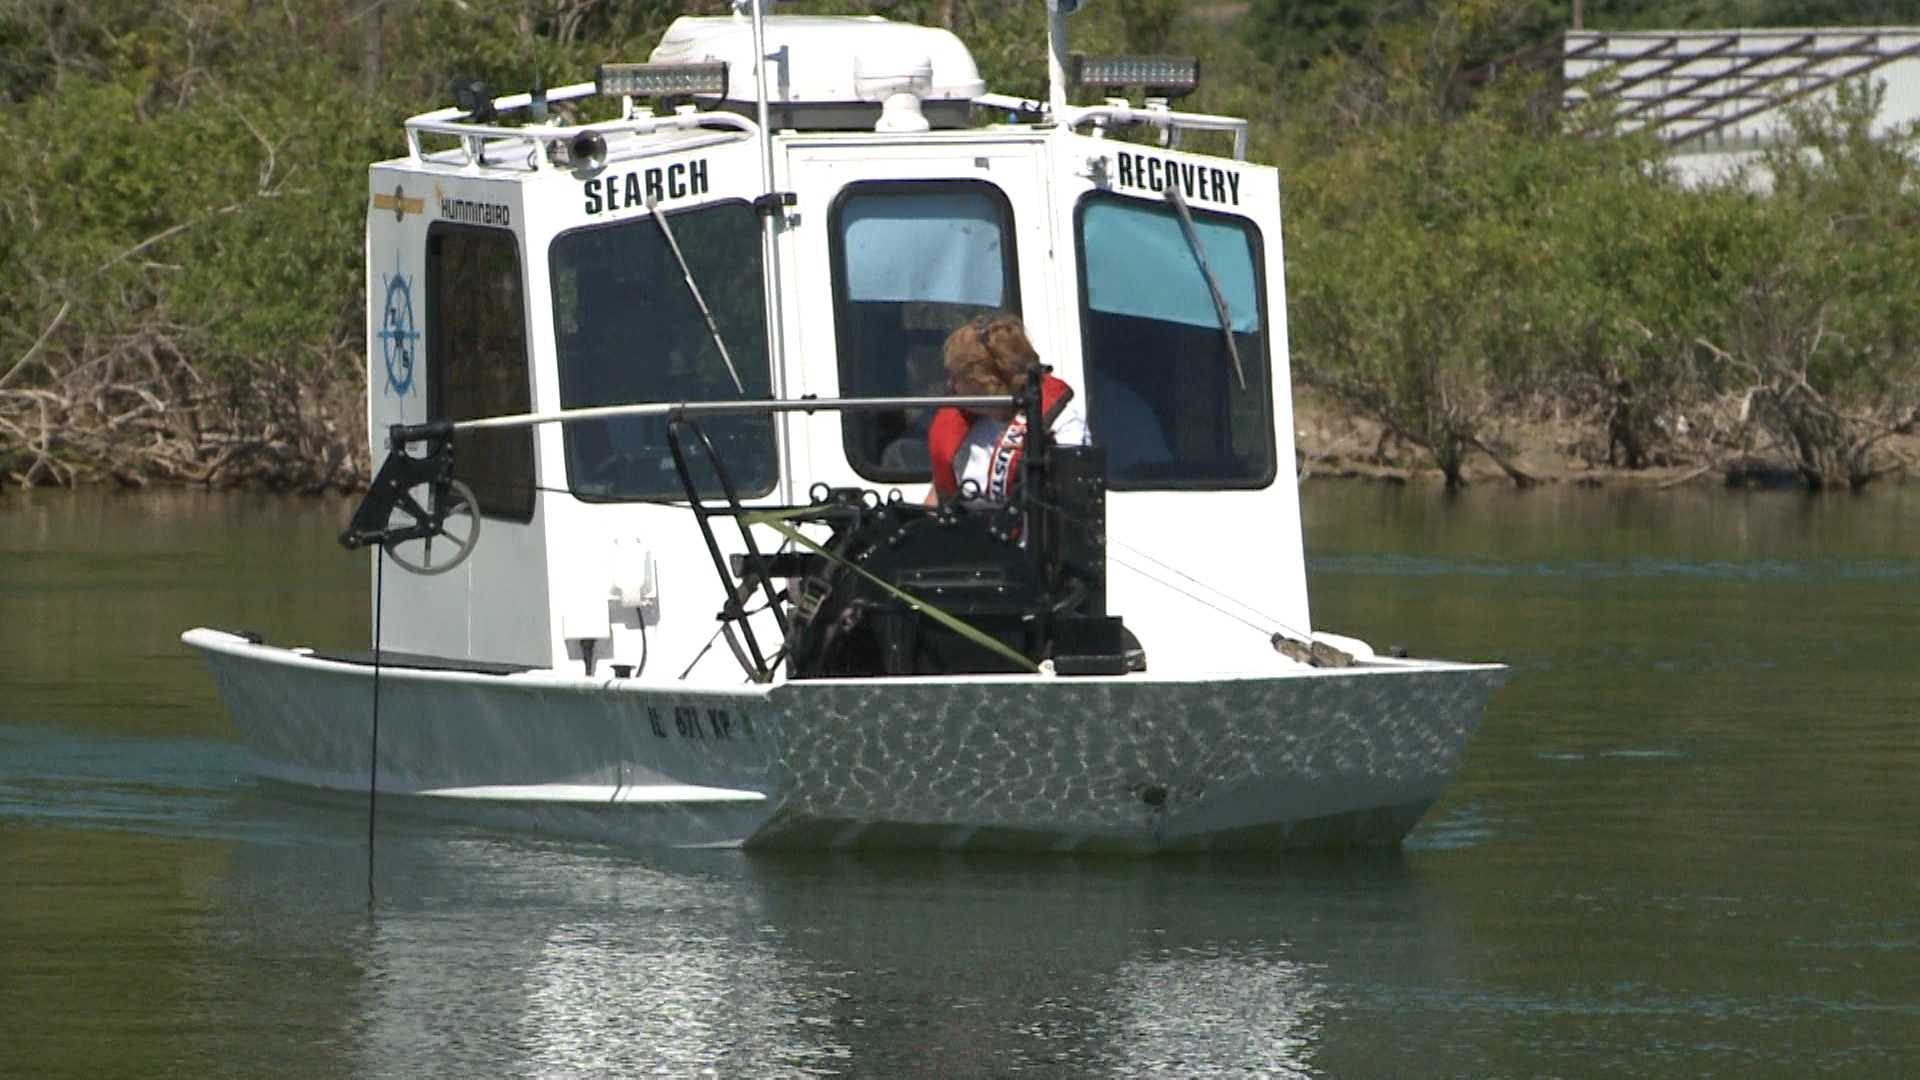 Boats and divers took to Lake Tenkiller again on Friday to try to find the body of a missing hiker who is believed to have been murdered.